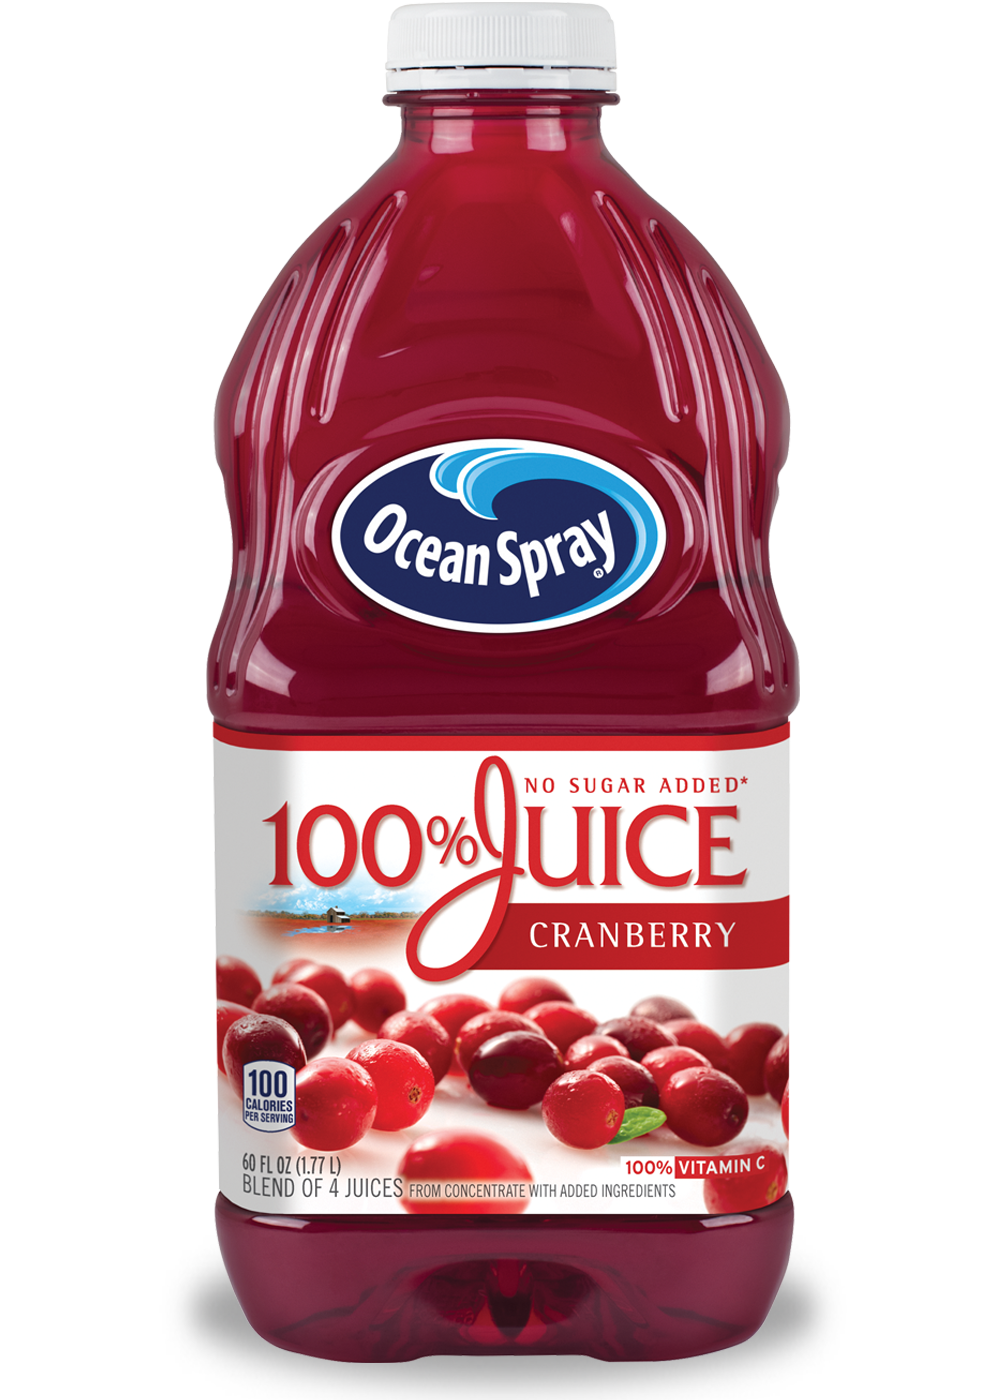 100% Juice Cranberry | Ocean Spray®